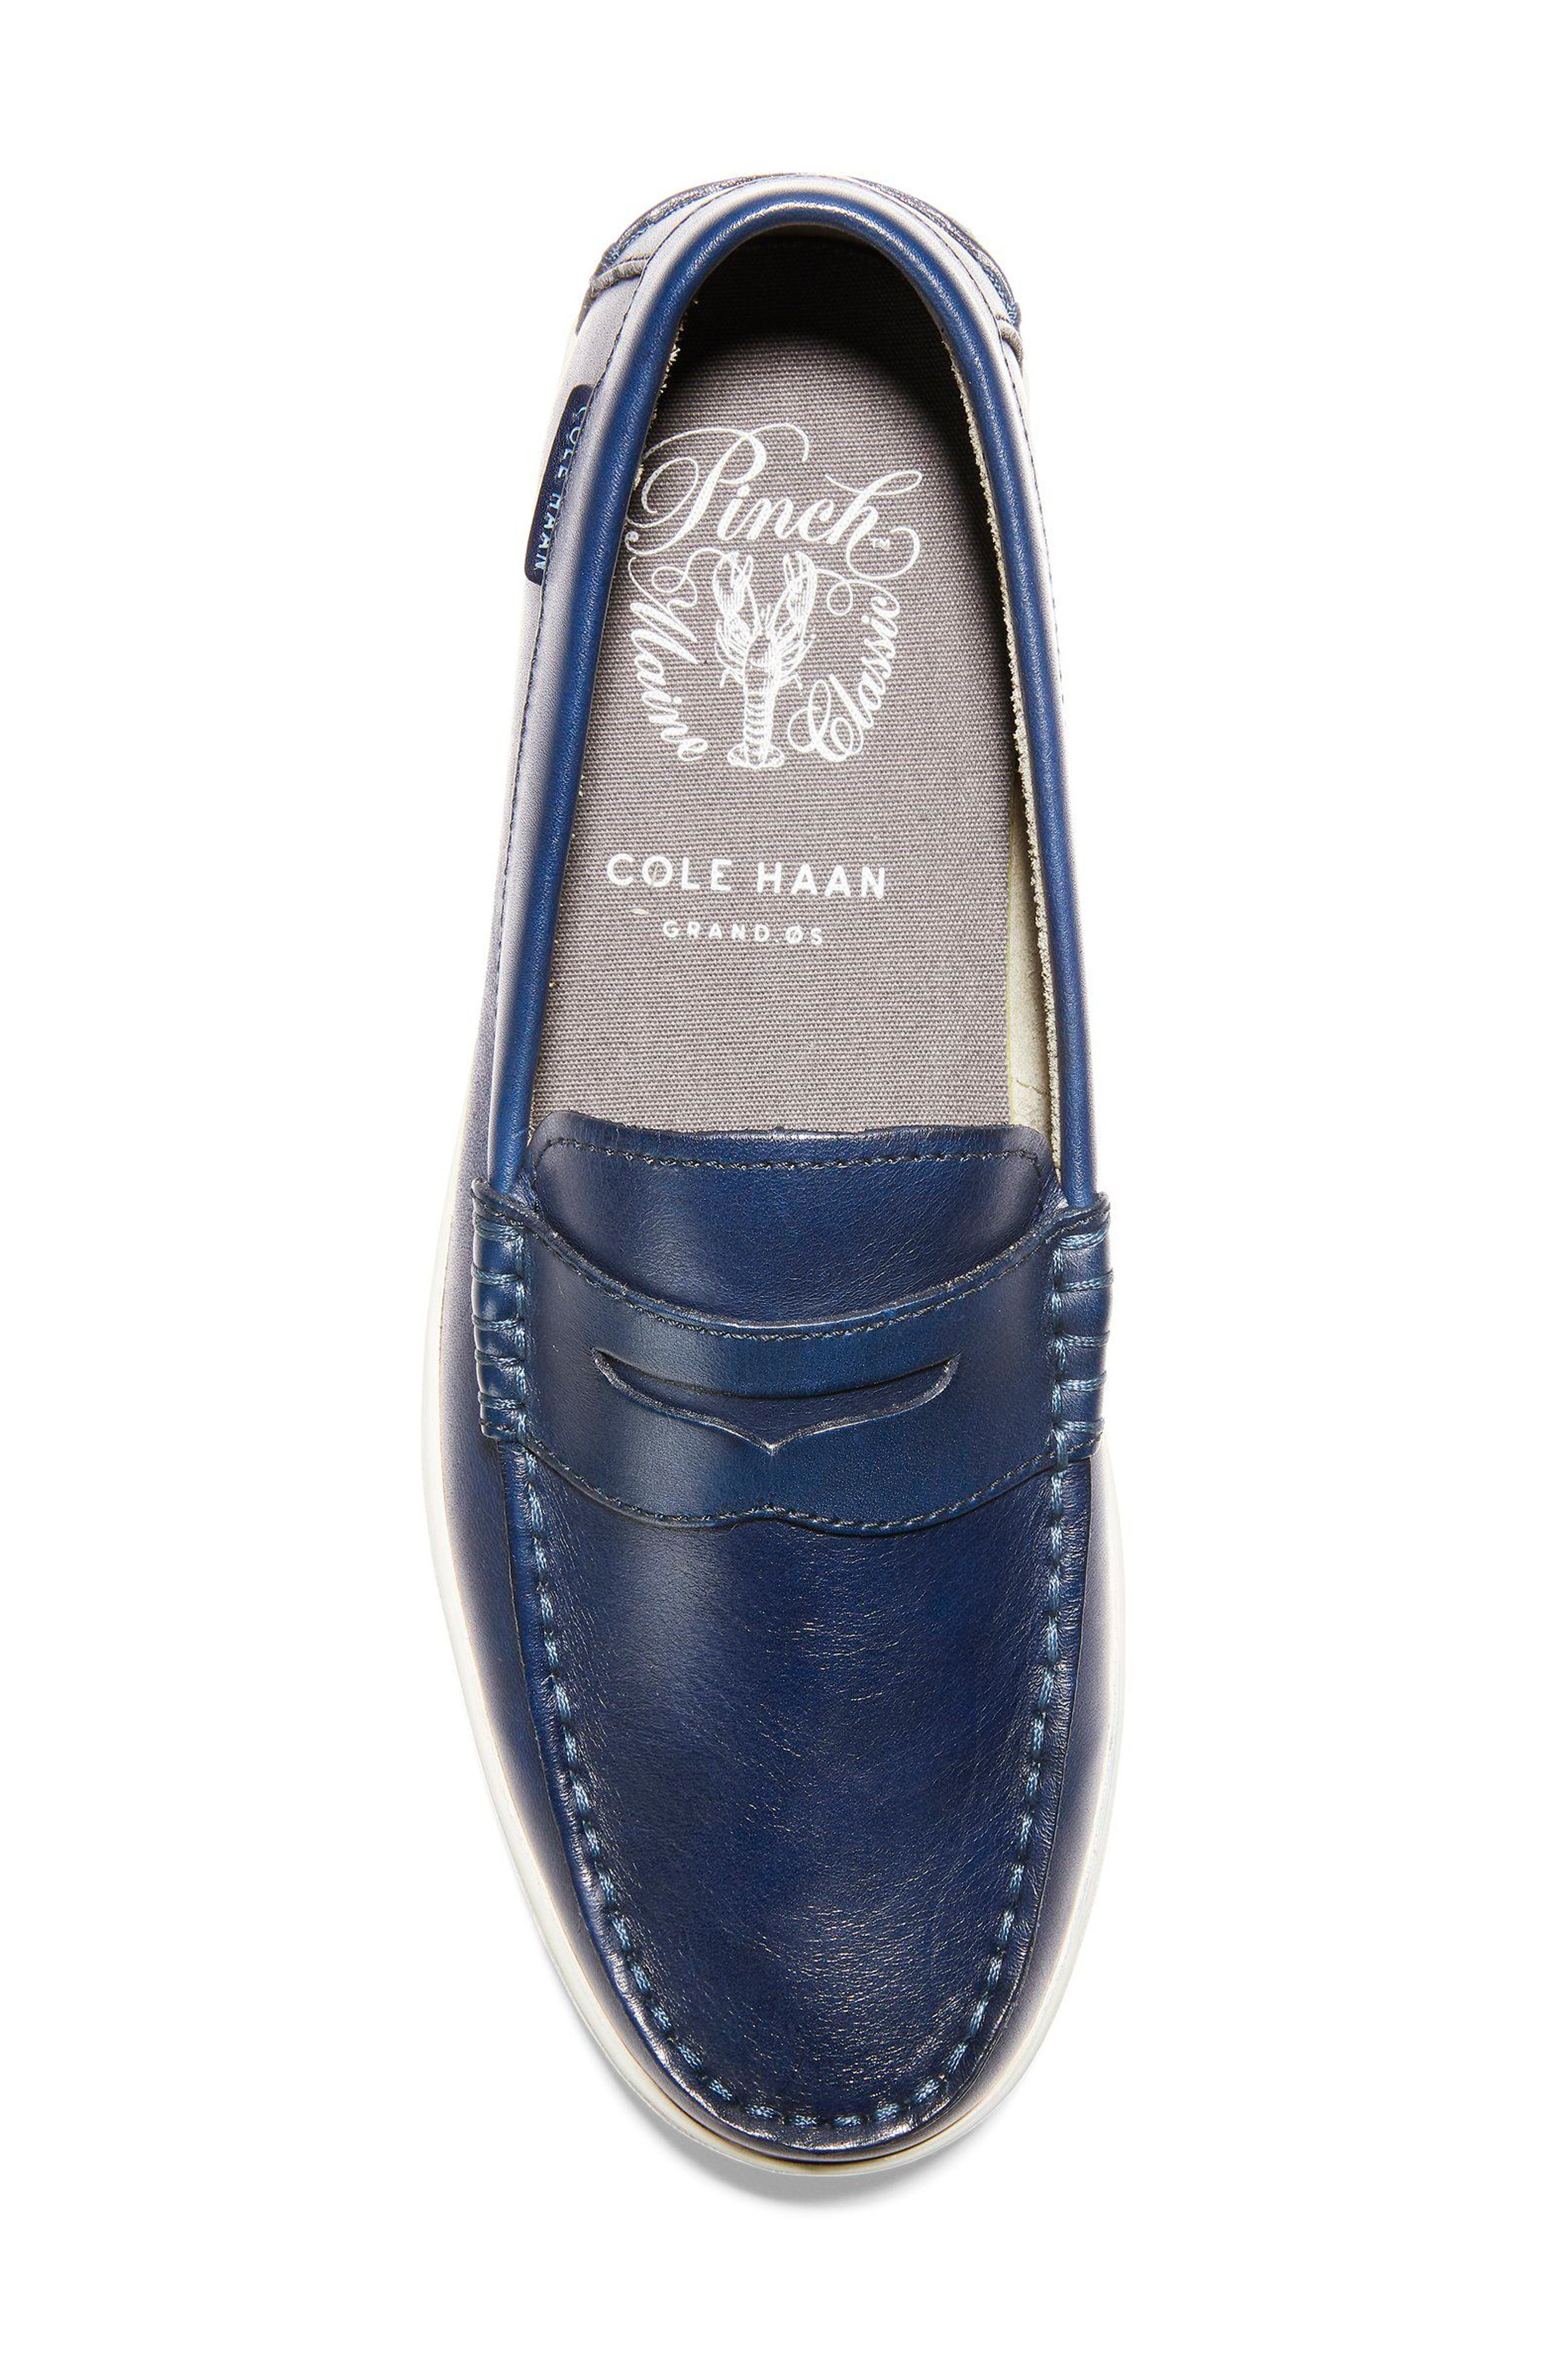 COLE HAAN, Pinch Penny Loafer, Alternate thumbnail 5, color, BLAZER BLUE LEATHER